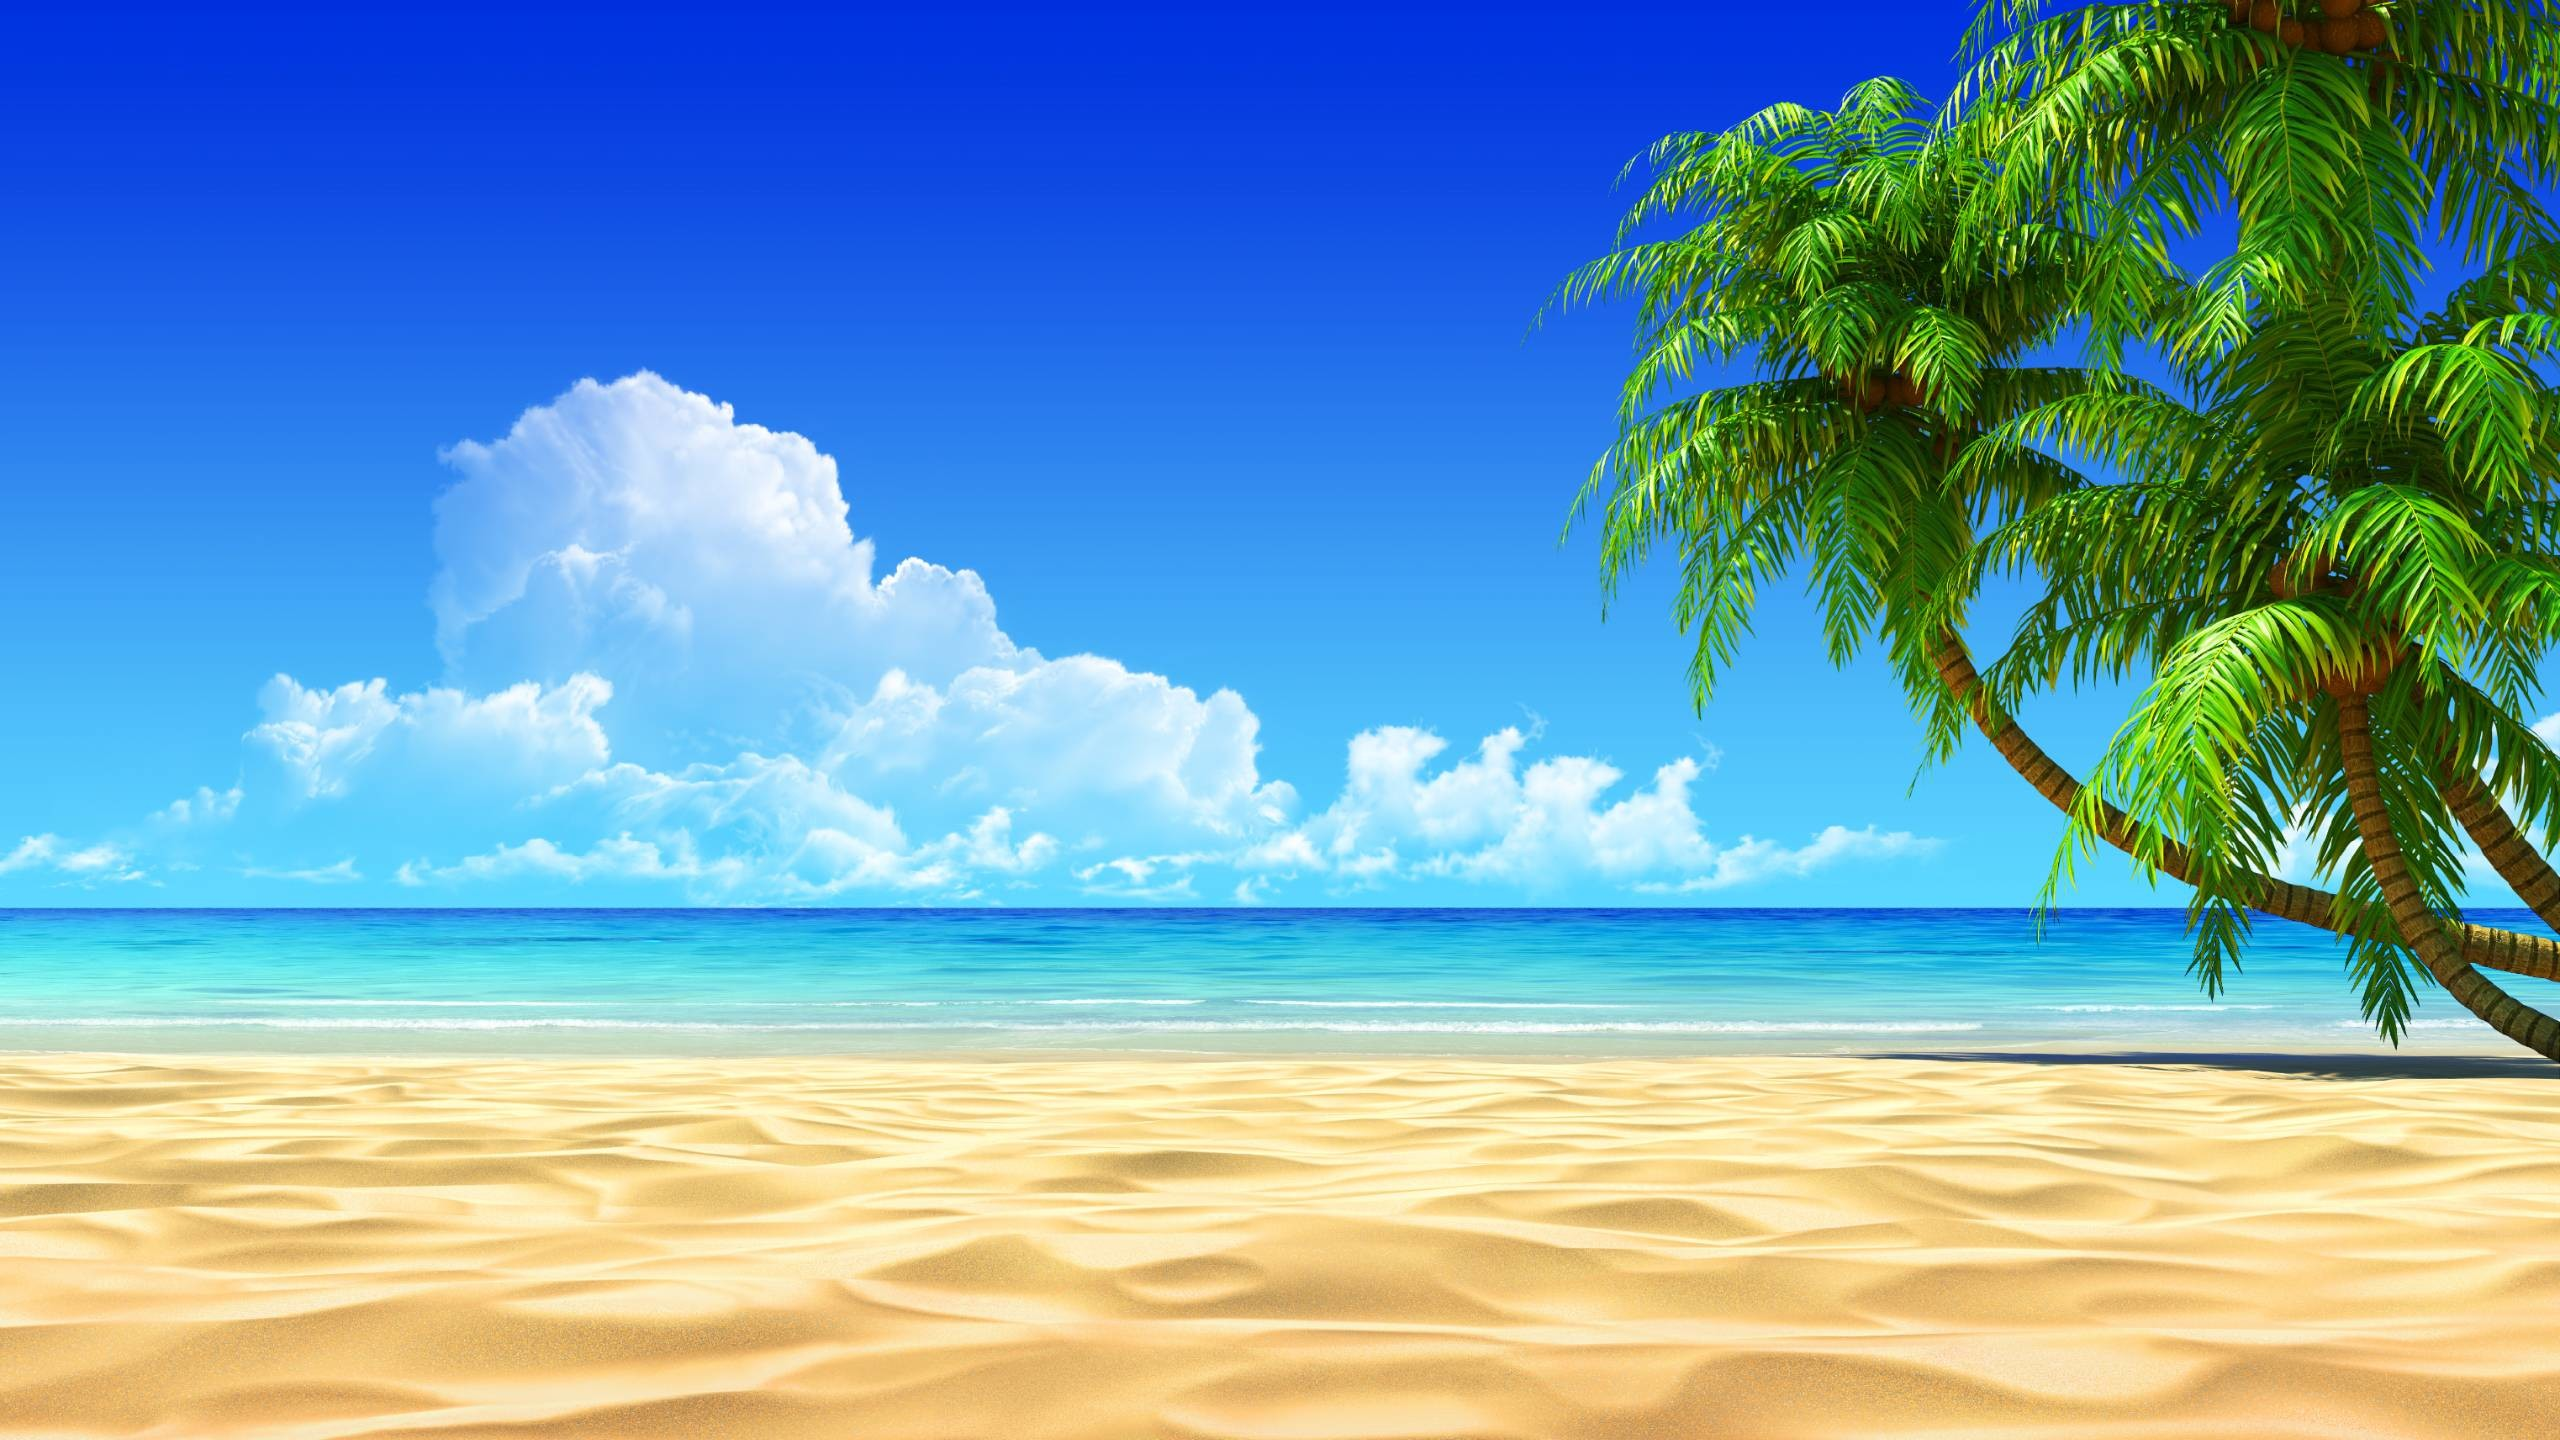 2560x1440 Tropical Beach Wallpaper Wallpapers HD, Wallpaper, Tropical Beach .